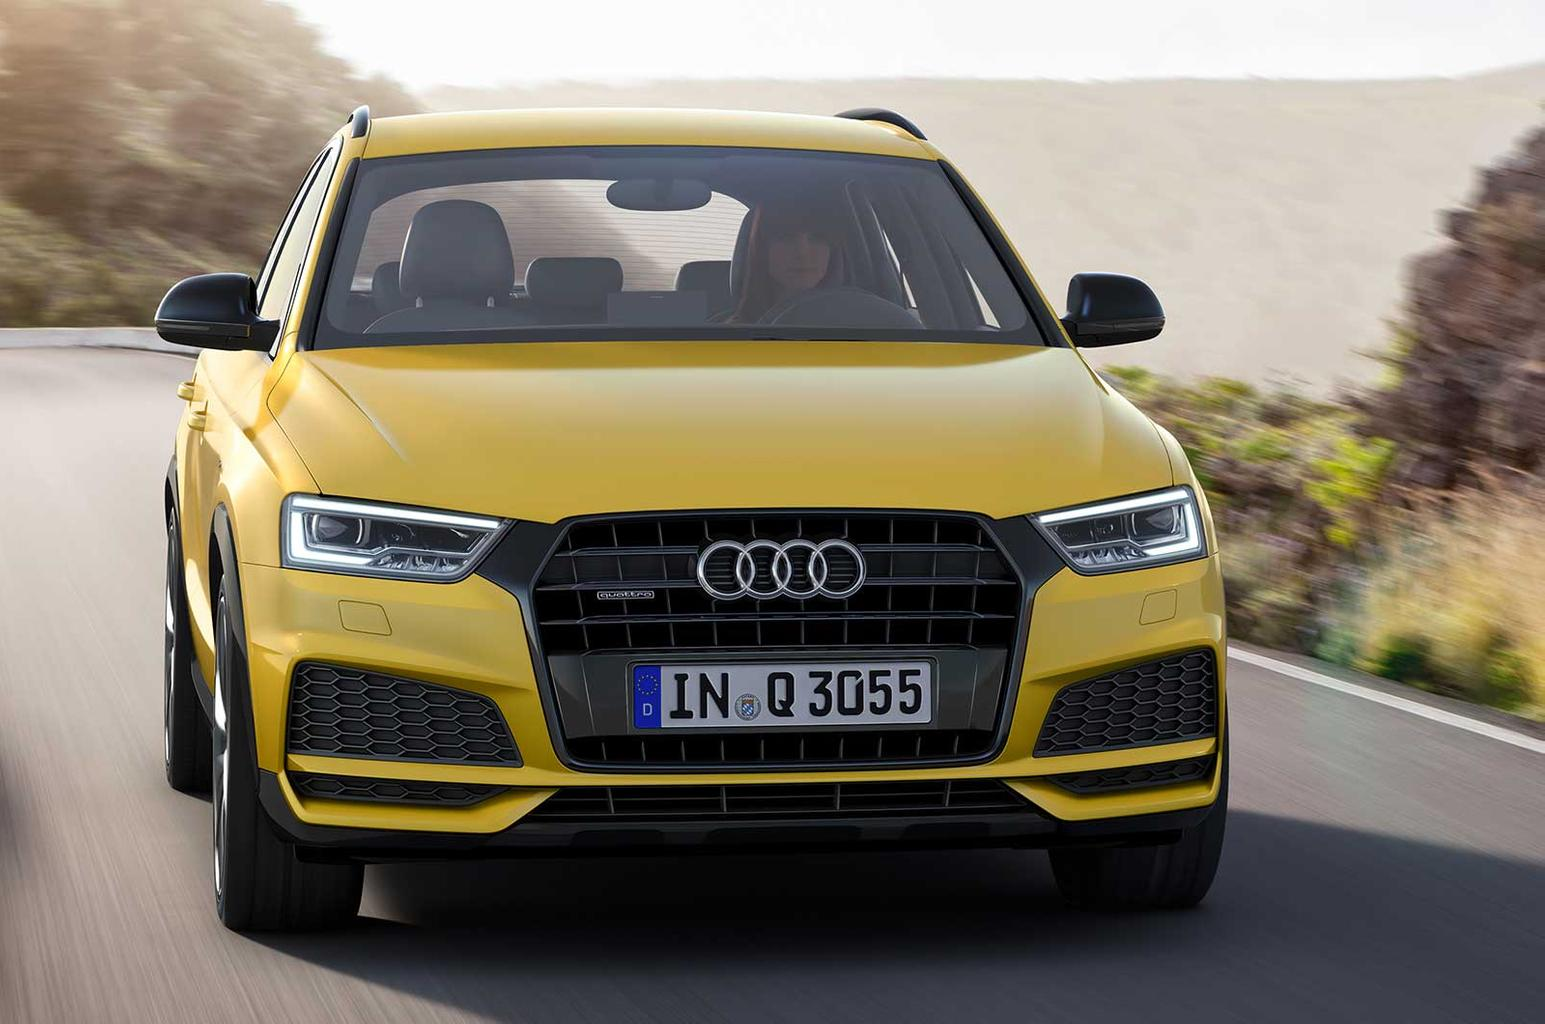 Audi Q3 range refreshed for 2017